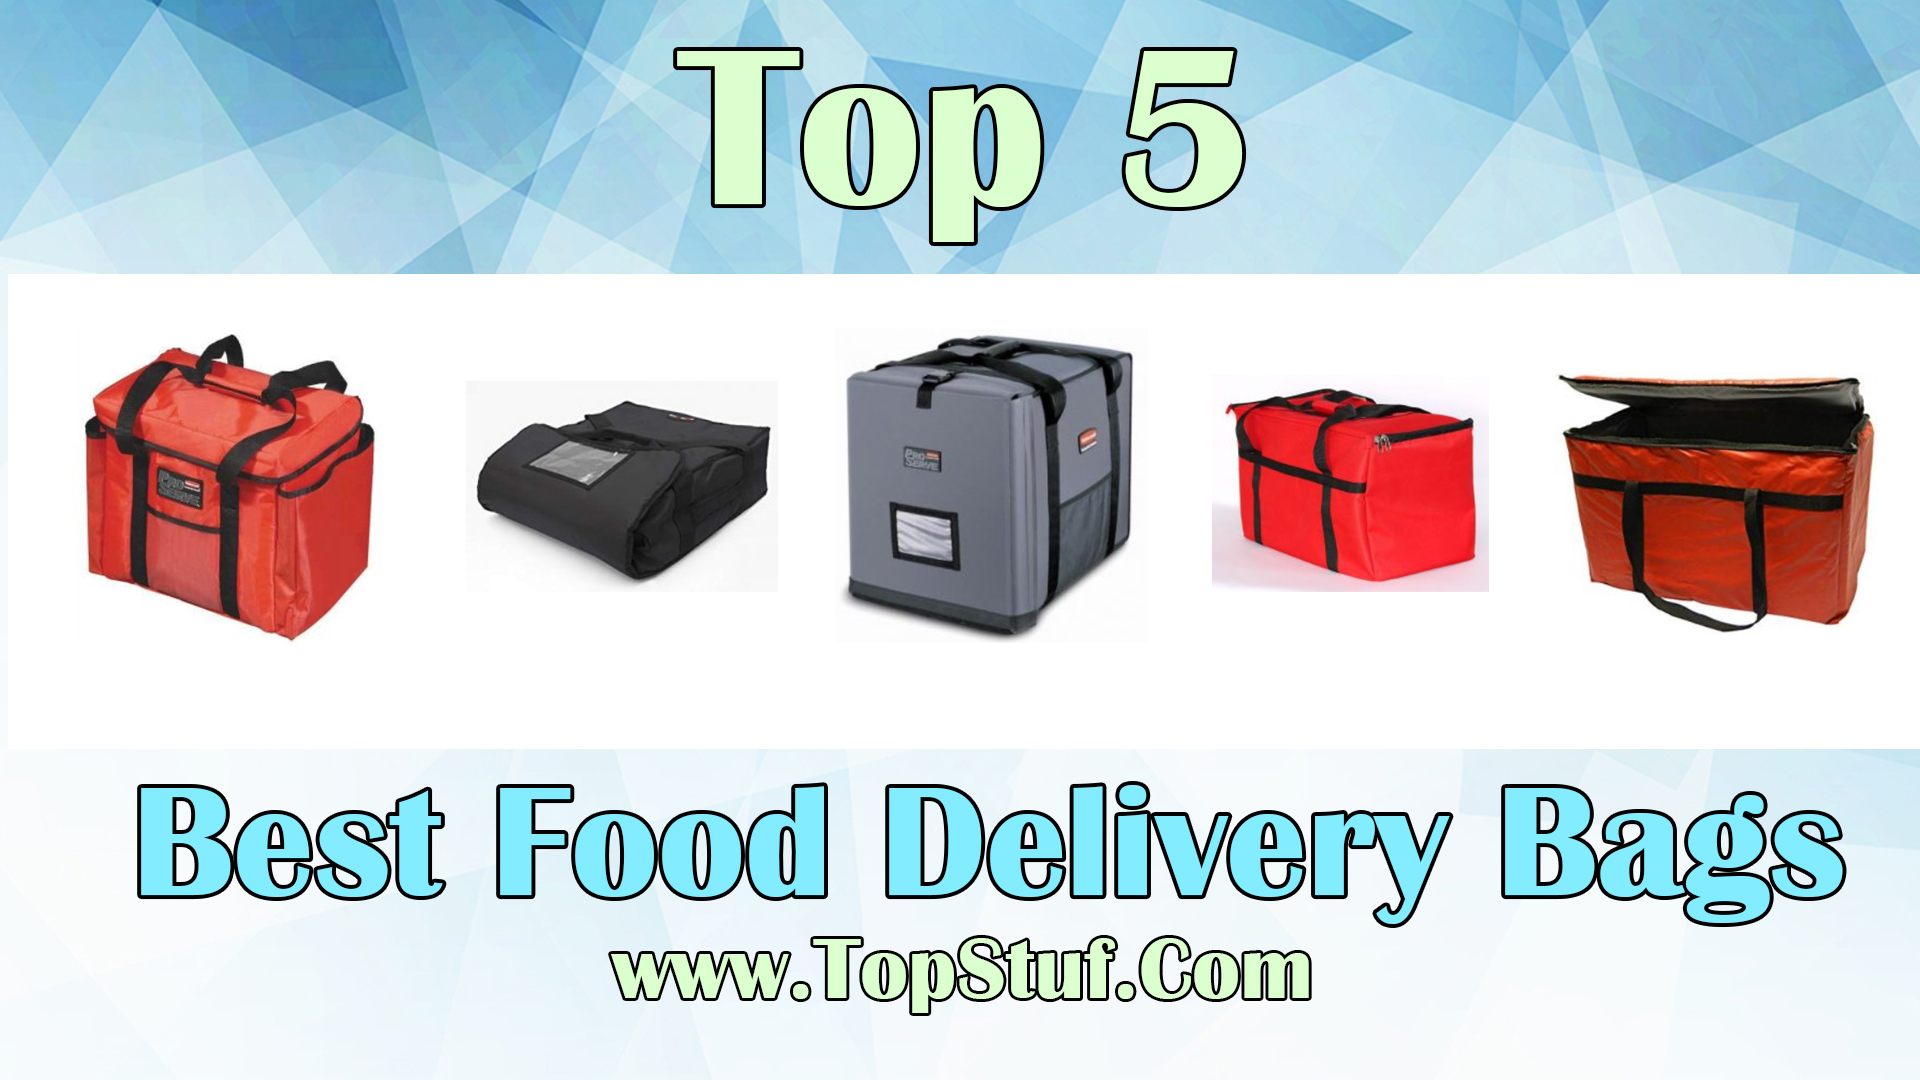 Best Food Delivery Bags